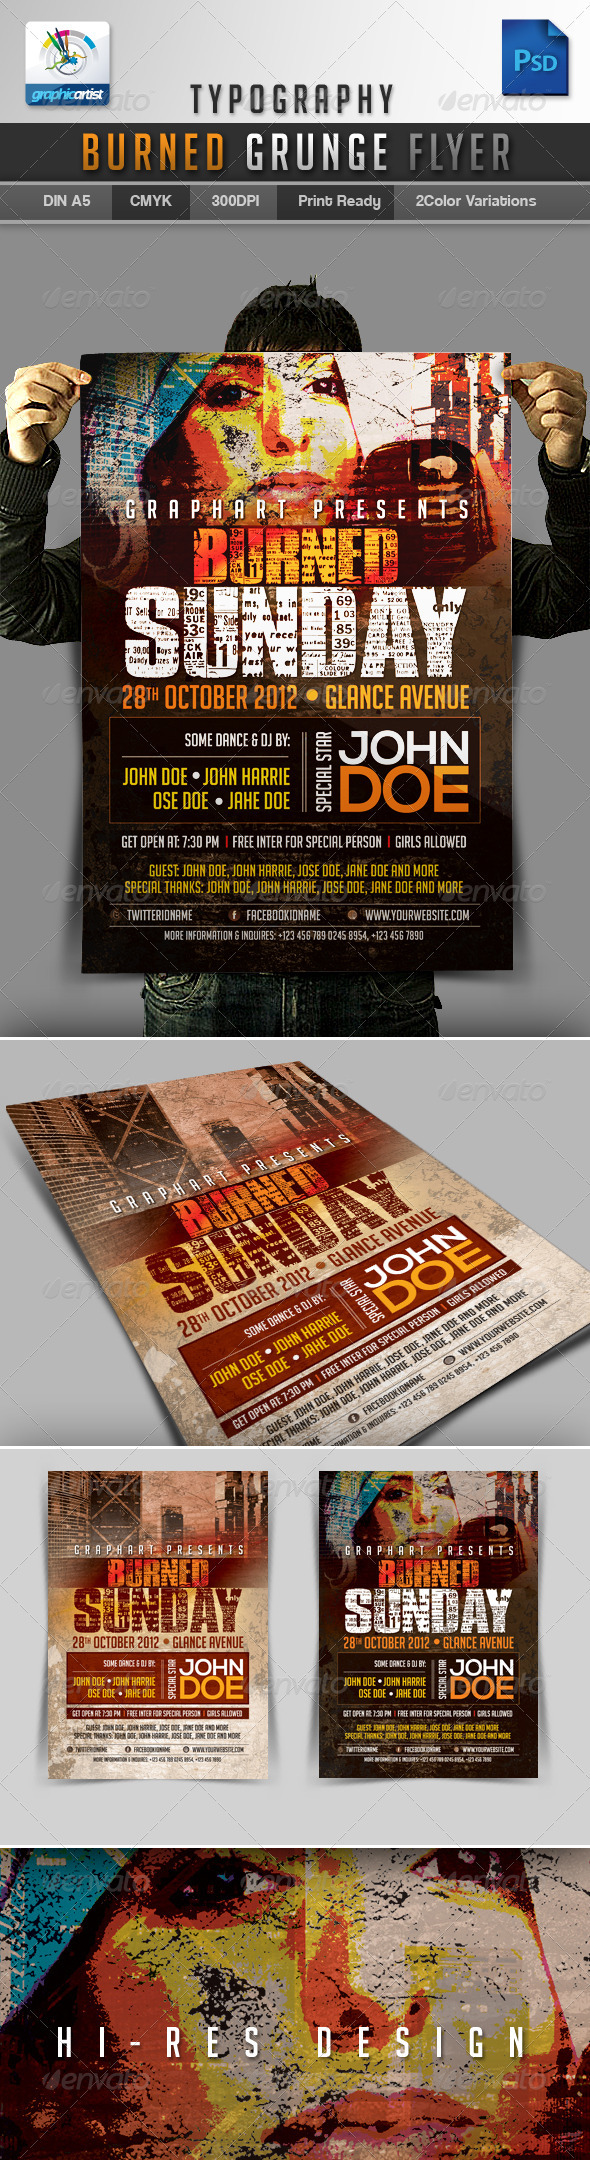 GraphicRiver Typography Burned Grunge Flyer 3273887